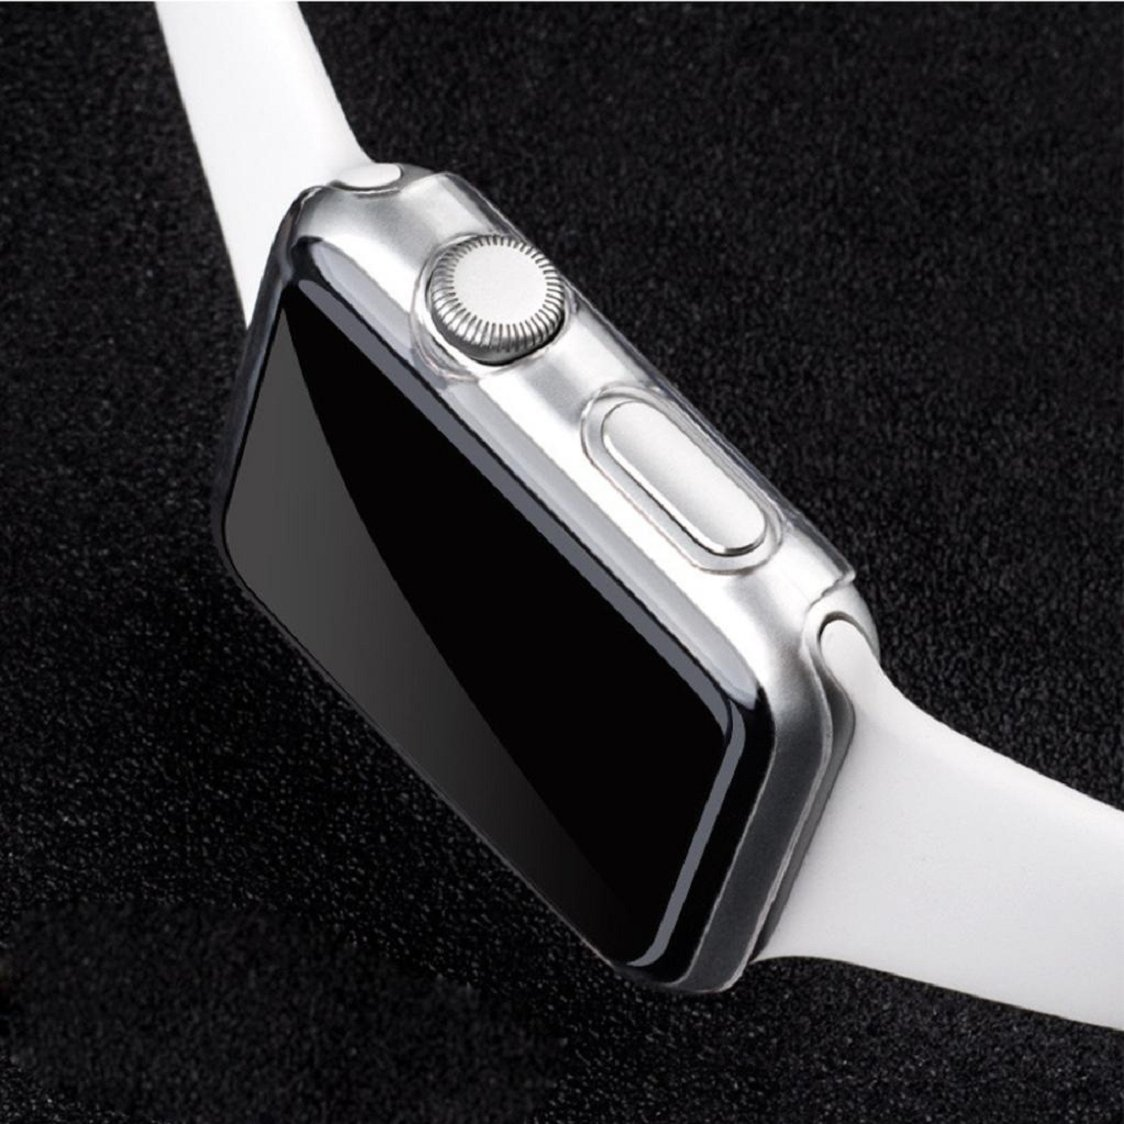 Apple Watch Case,Sunfei Ultra-Slim Cystal Clear PC Hard Protective Case Cover for Apple Watch (42mm) by Sunfei (Image #7)